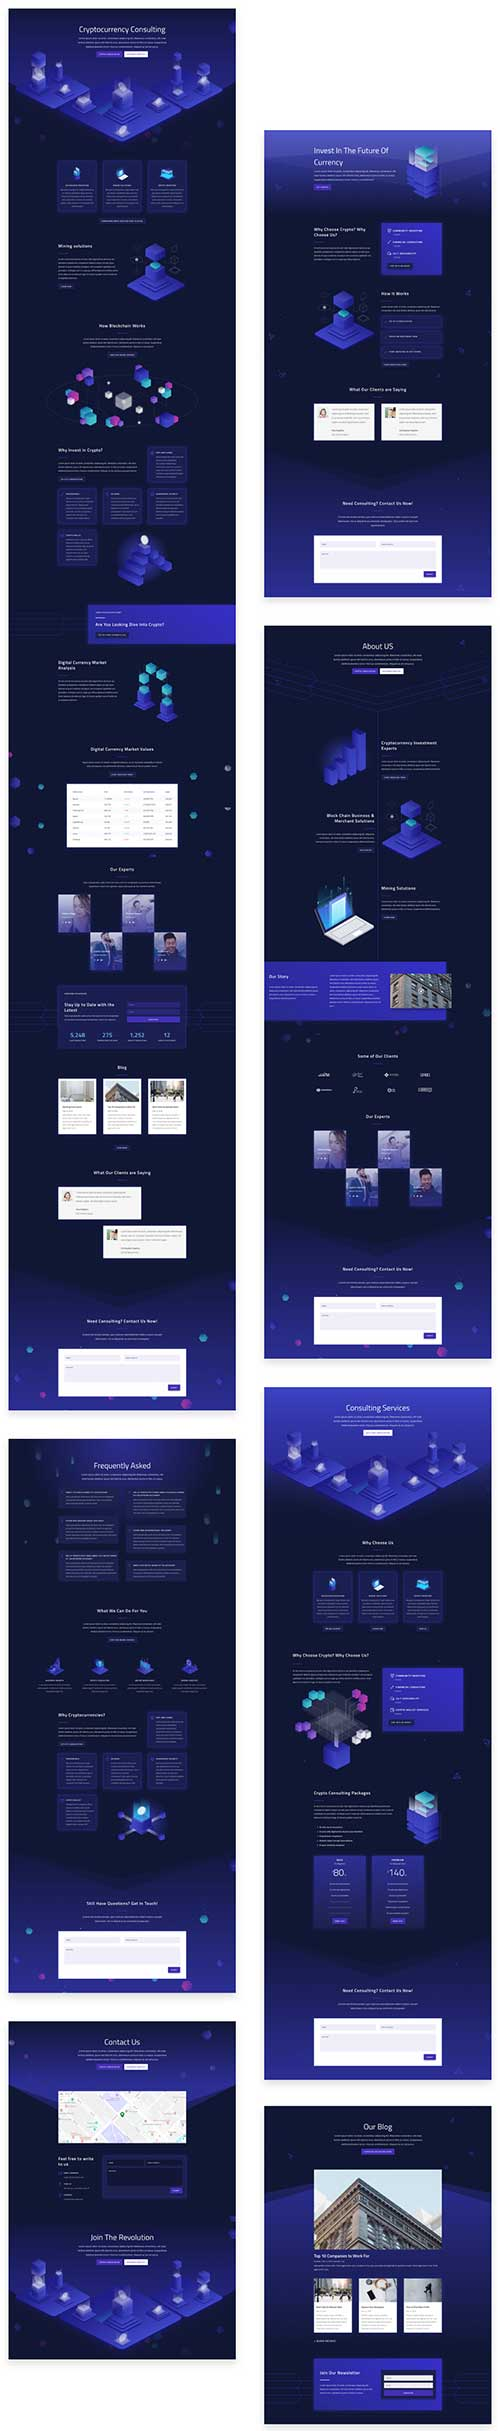 divi cryptocurrency layout pack